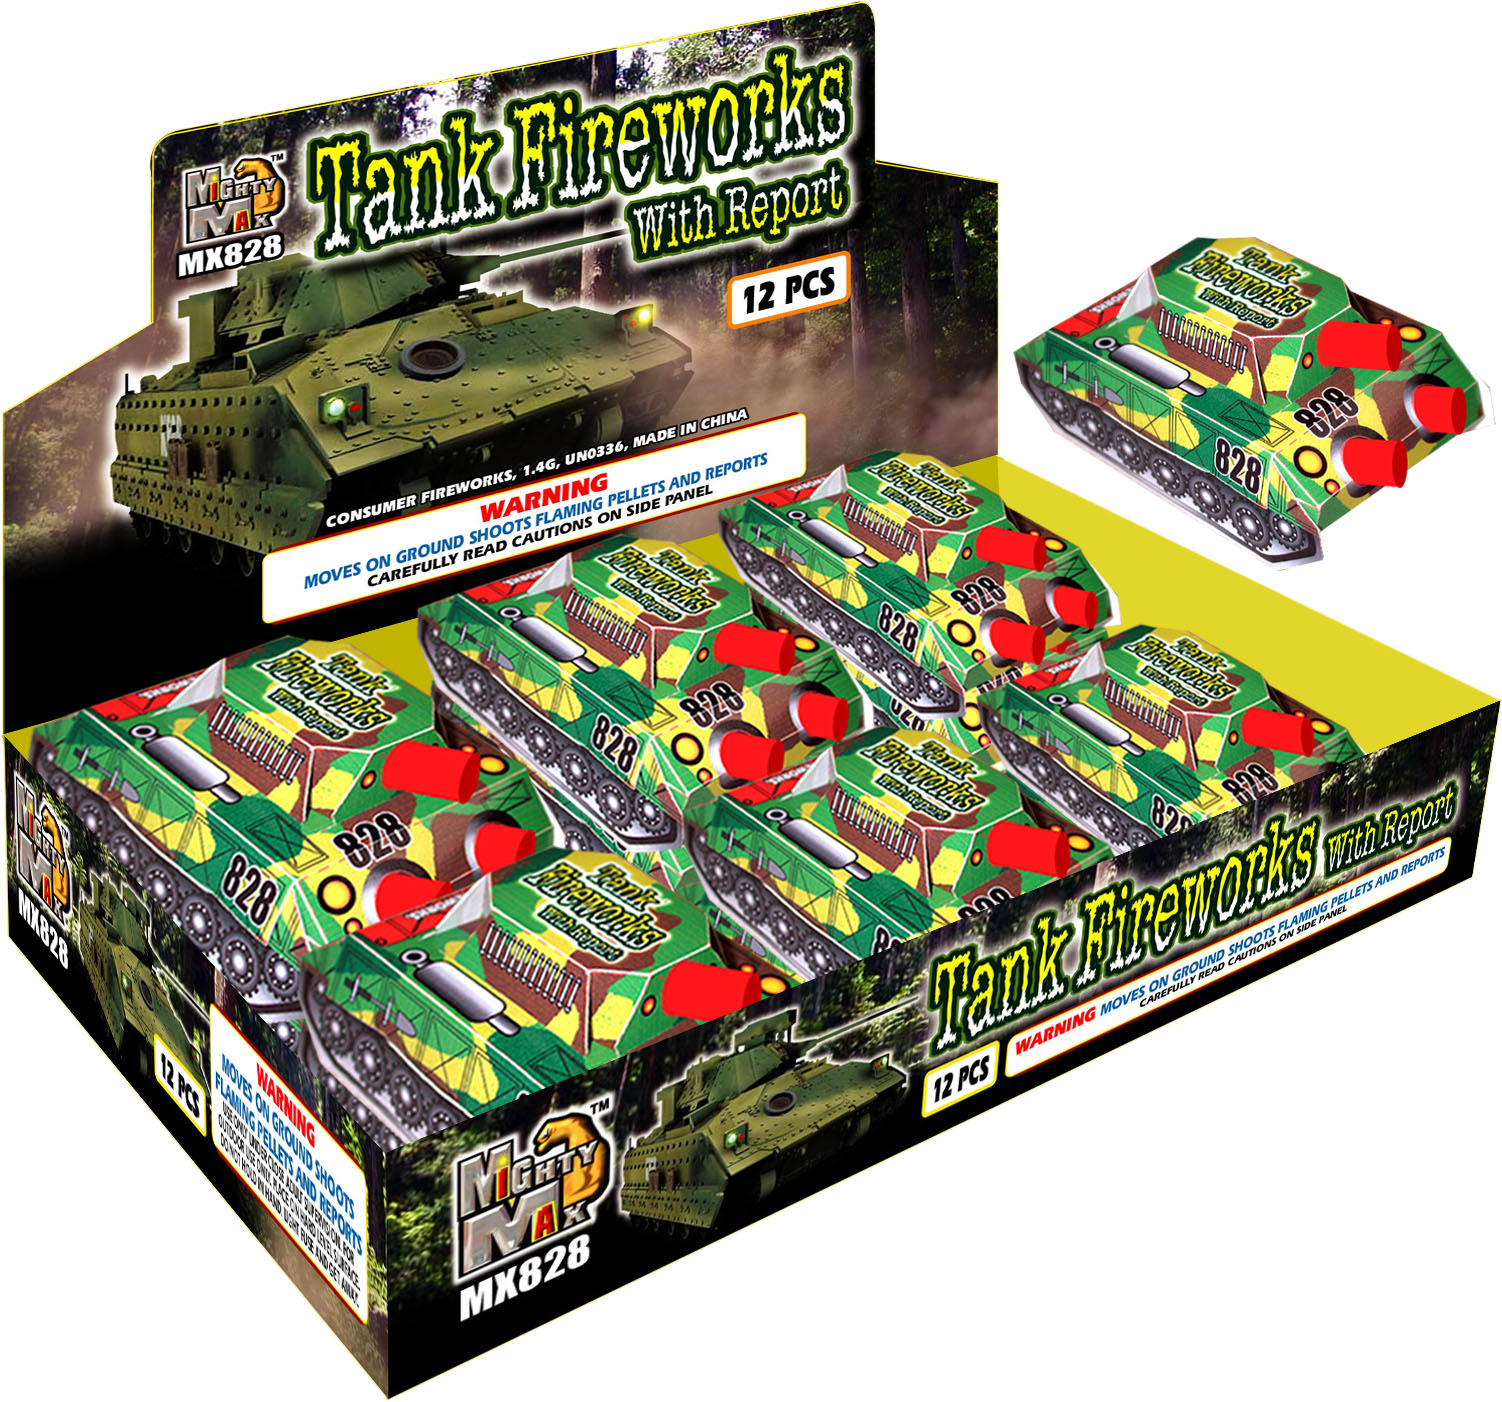 MX828 Tank Fireworks With Report